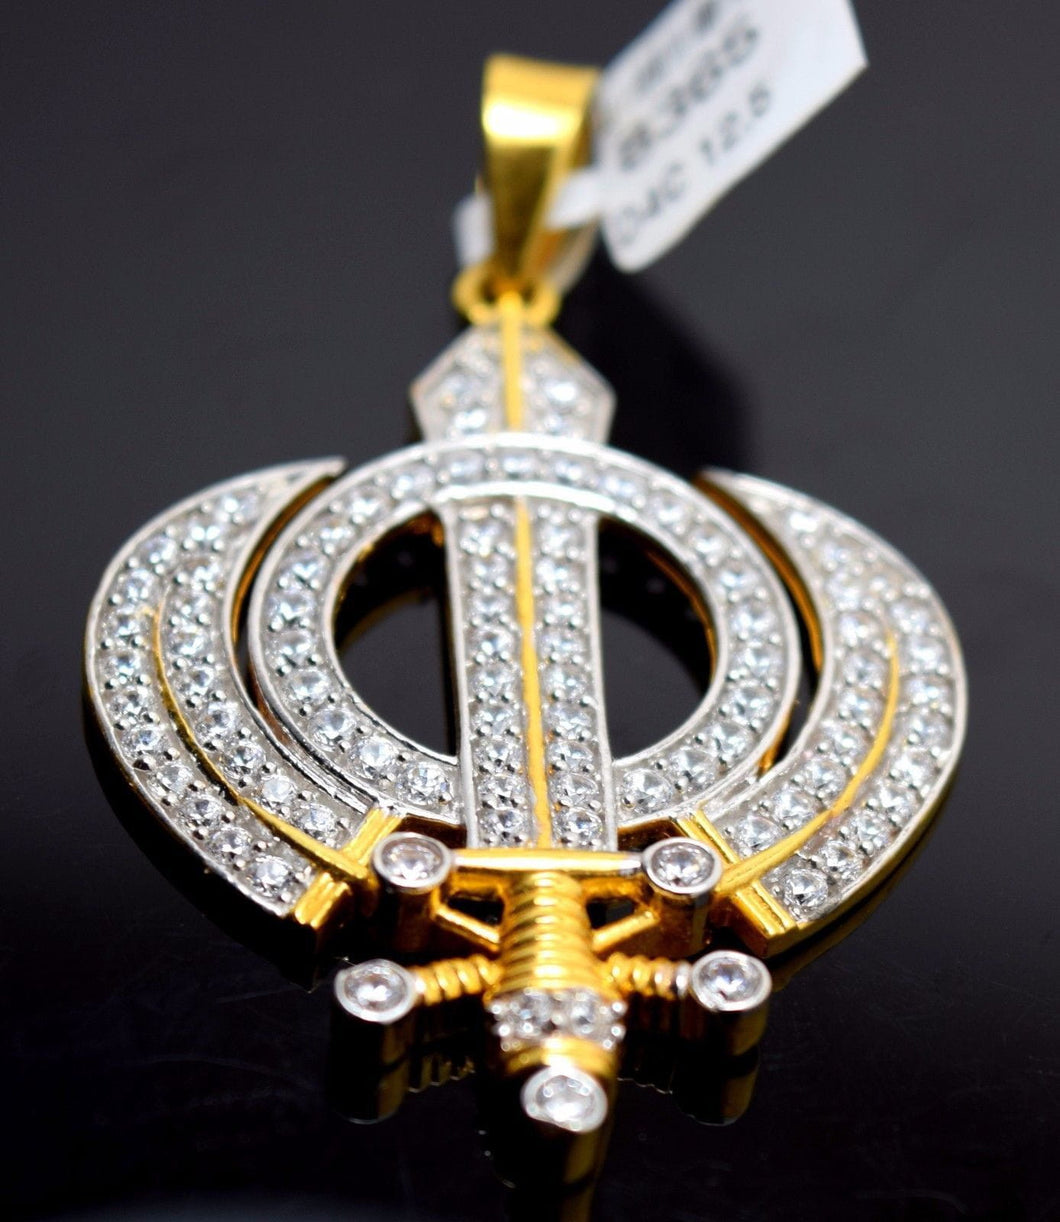 22k 22ct Solid Gold Sikh Singh Punjabi SIKHI KHANDA 3D Raised Round Pendant 8365 - Royal Dubai Jewellers